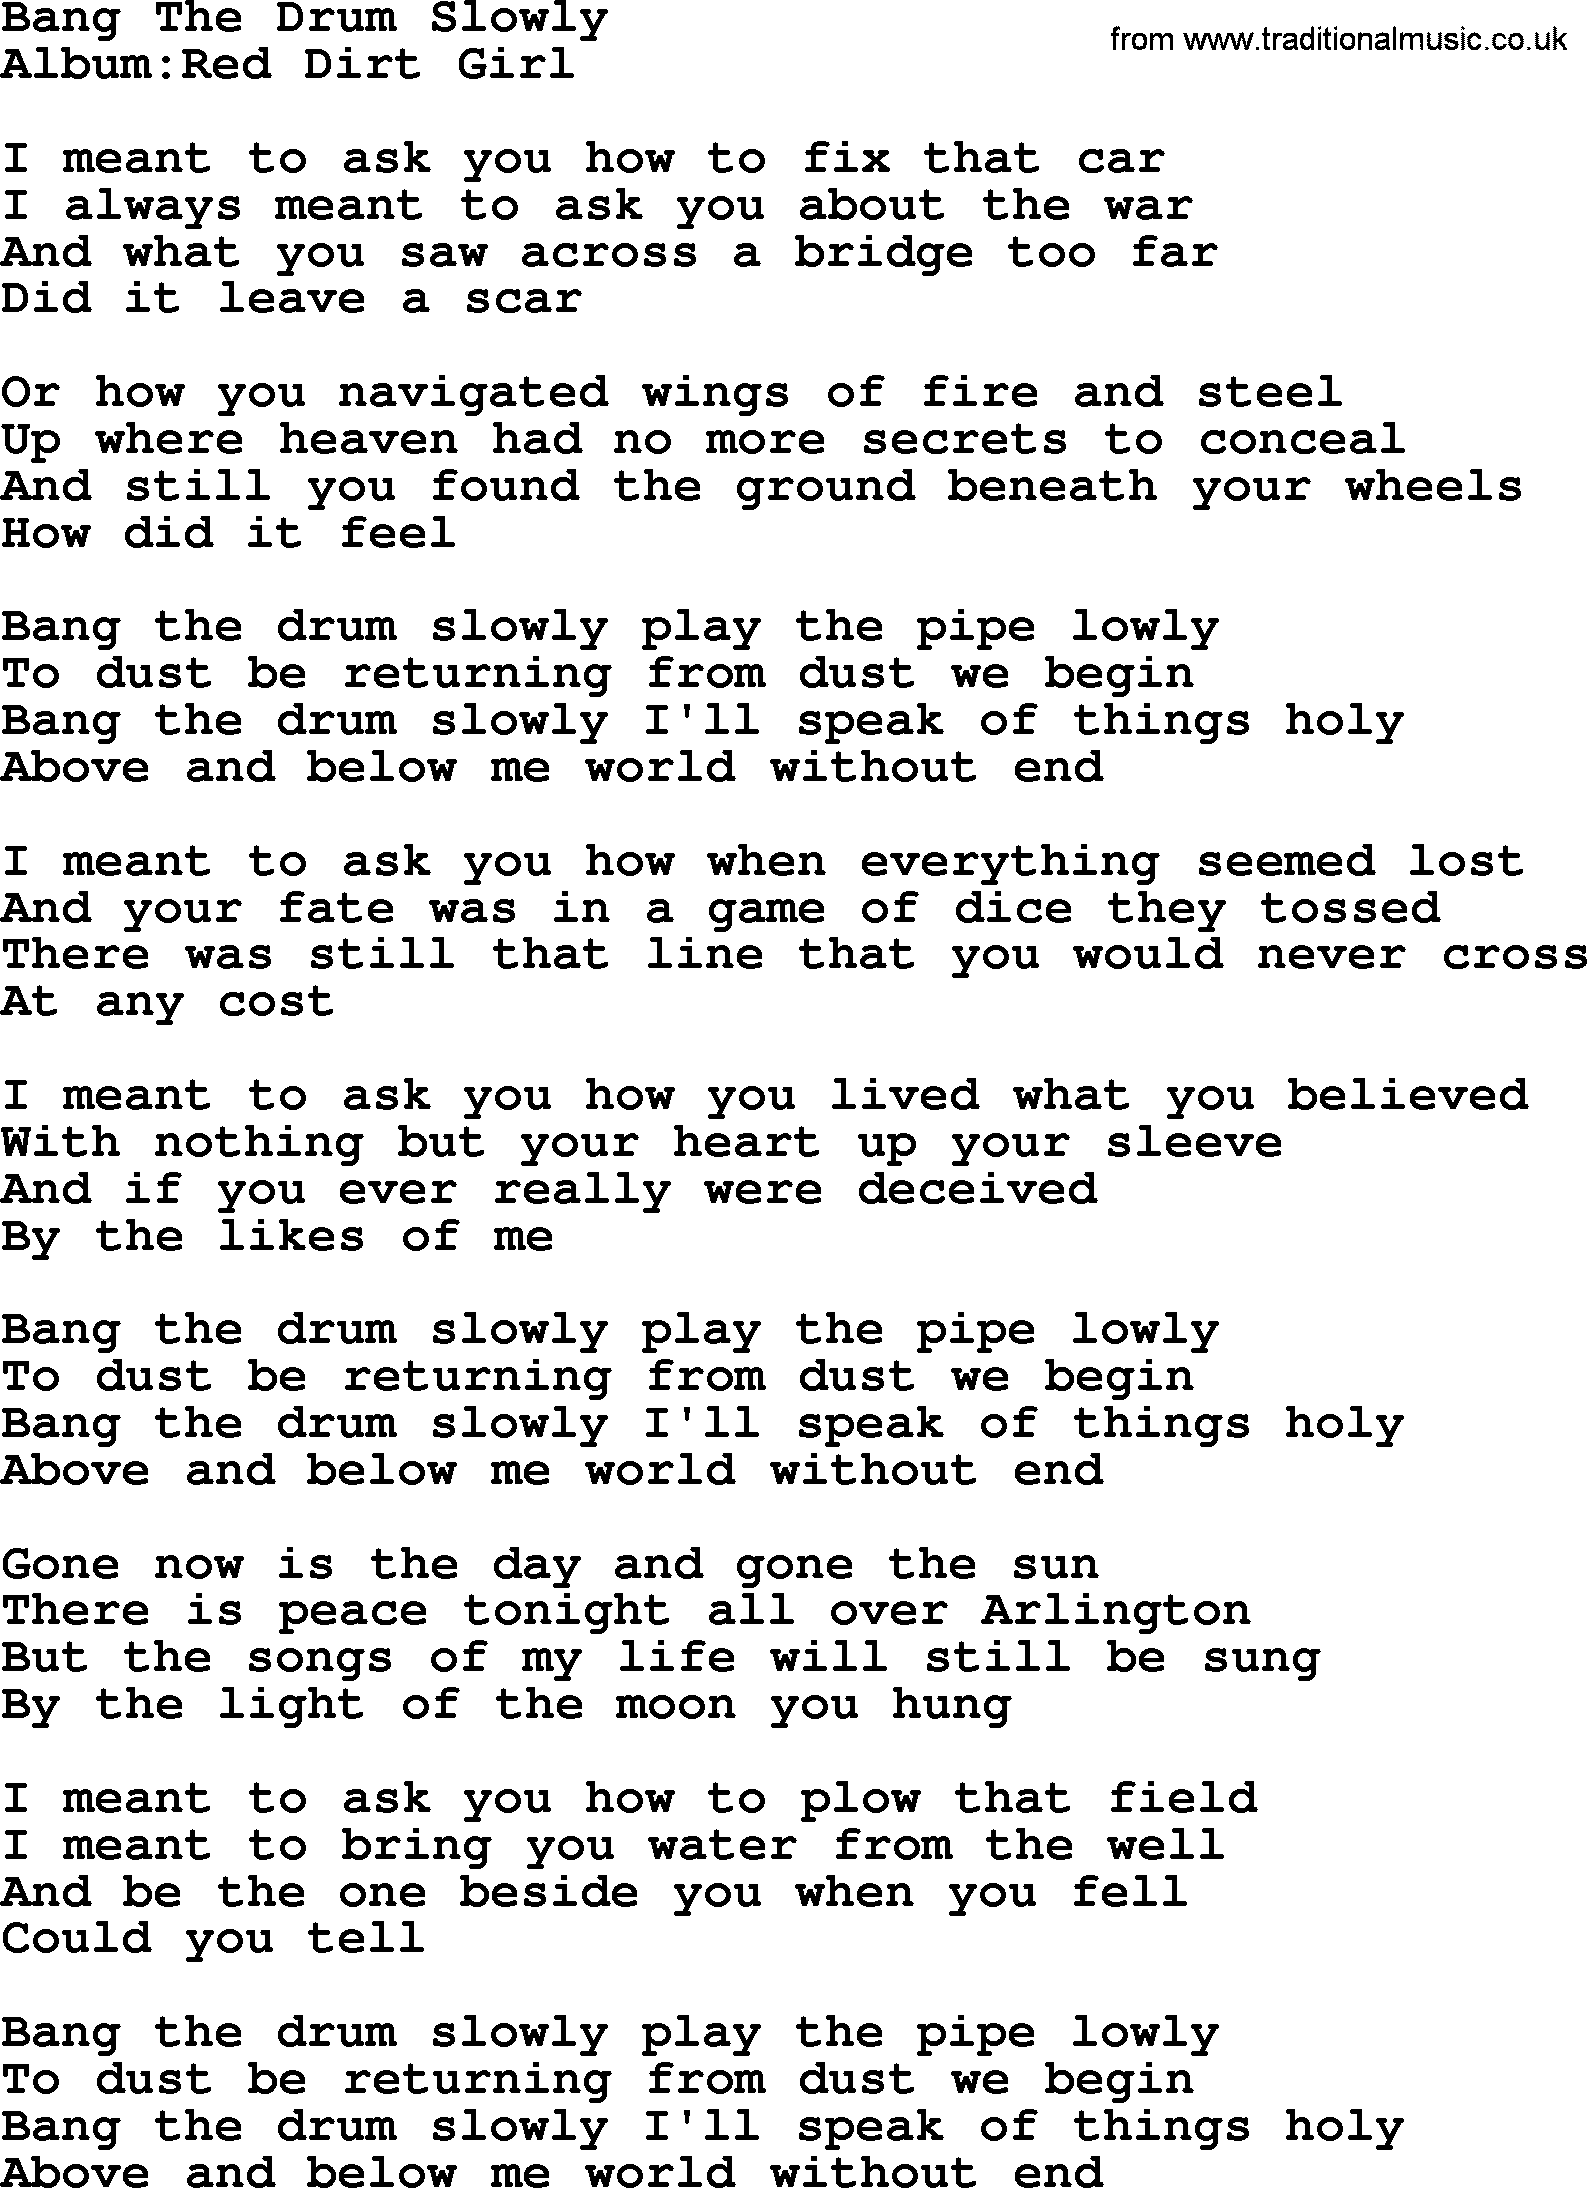 Bang it lyrics